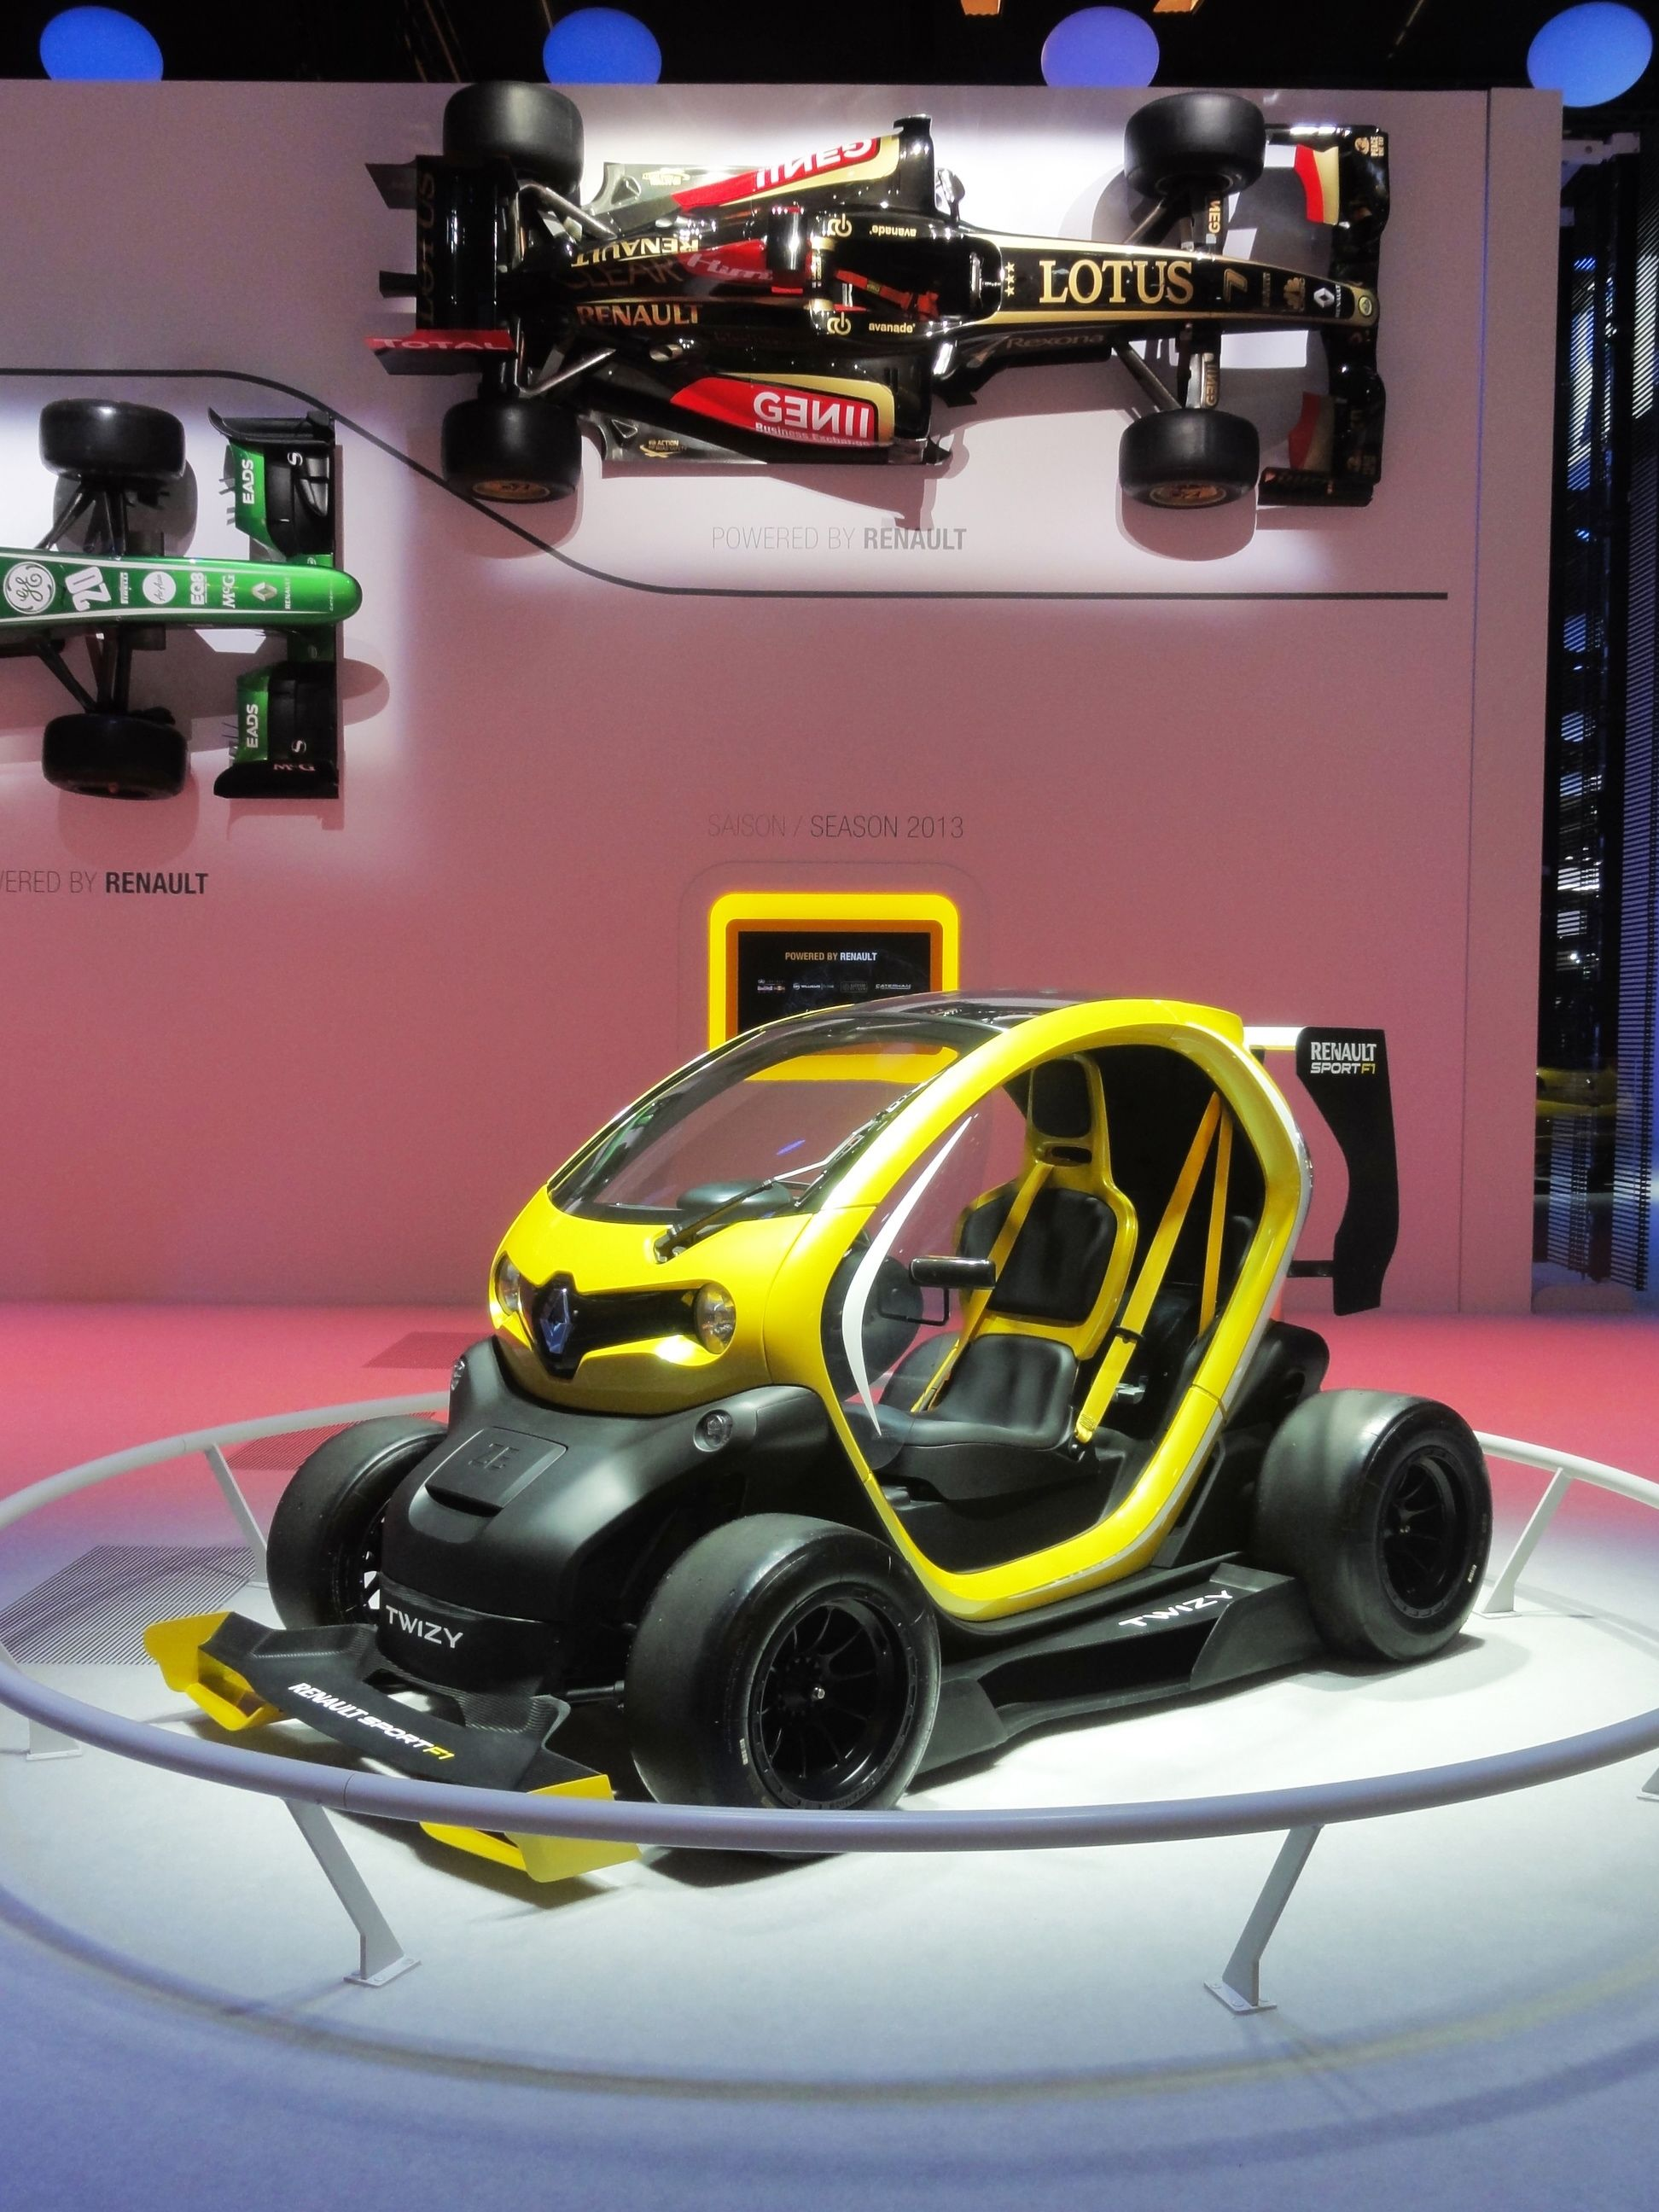 Renault Twizy F1 Concept Car Was Also Exhibited At The Frankfurt